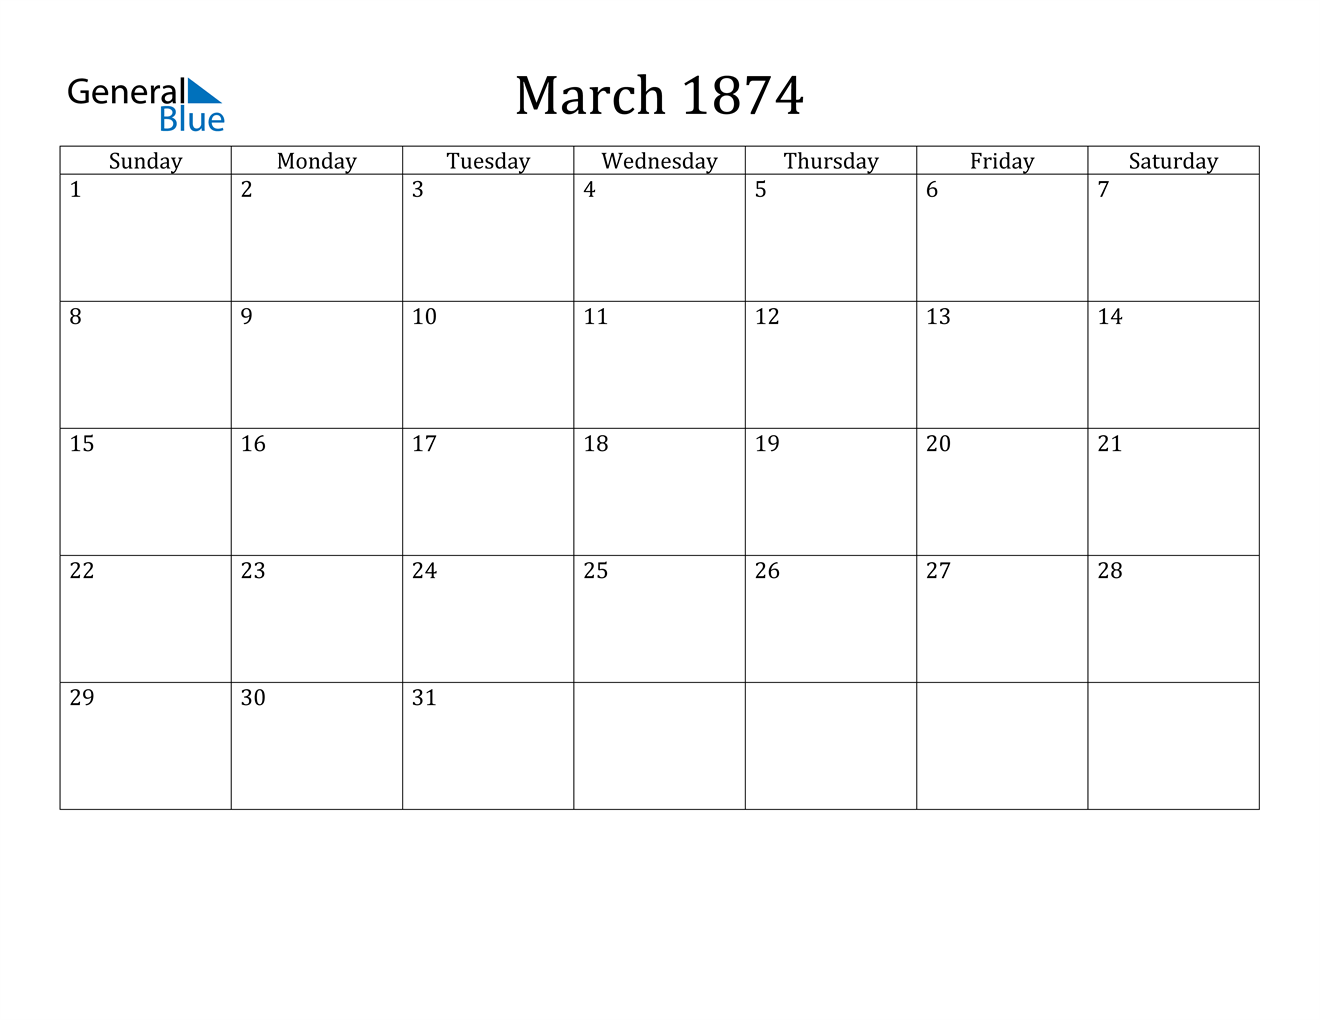 Image of March 1874 Calendar